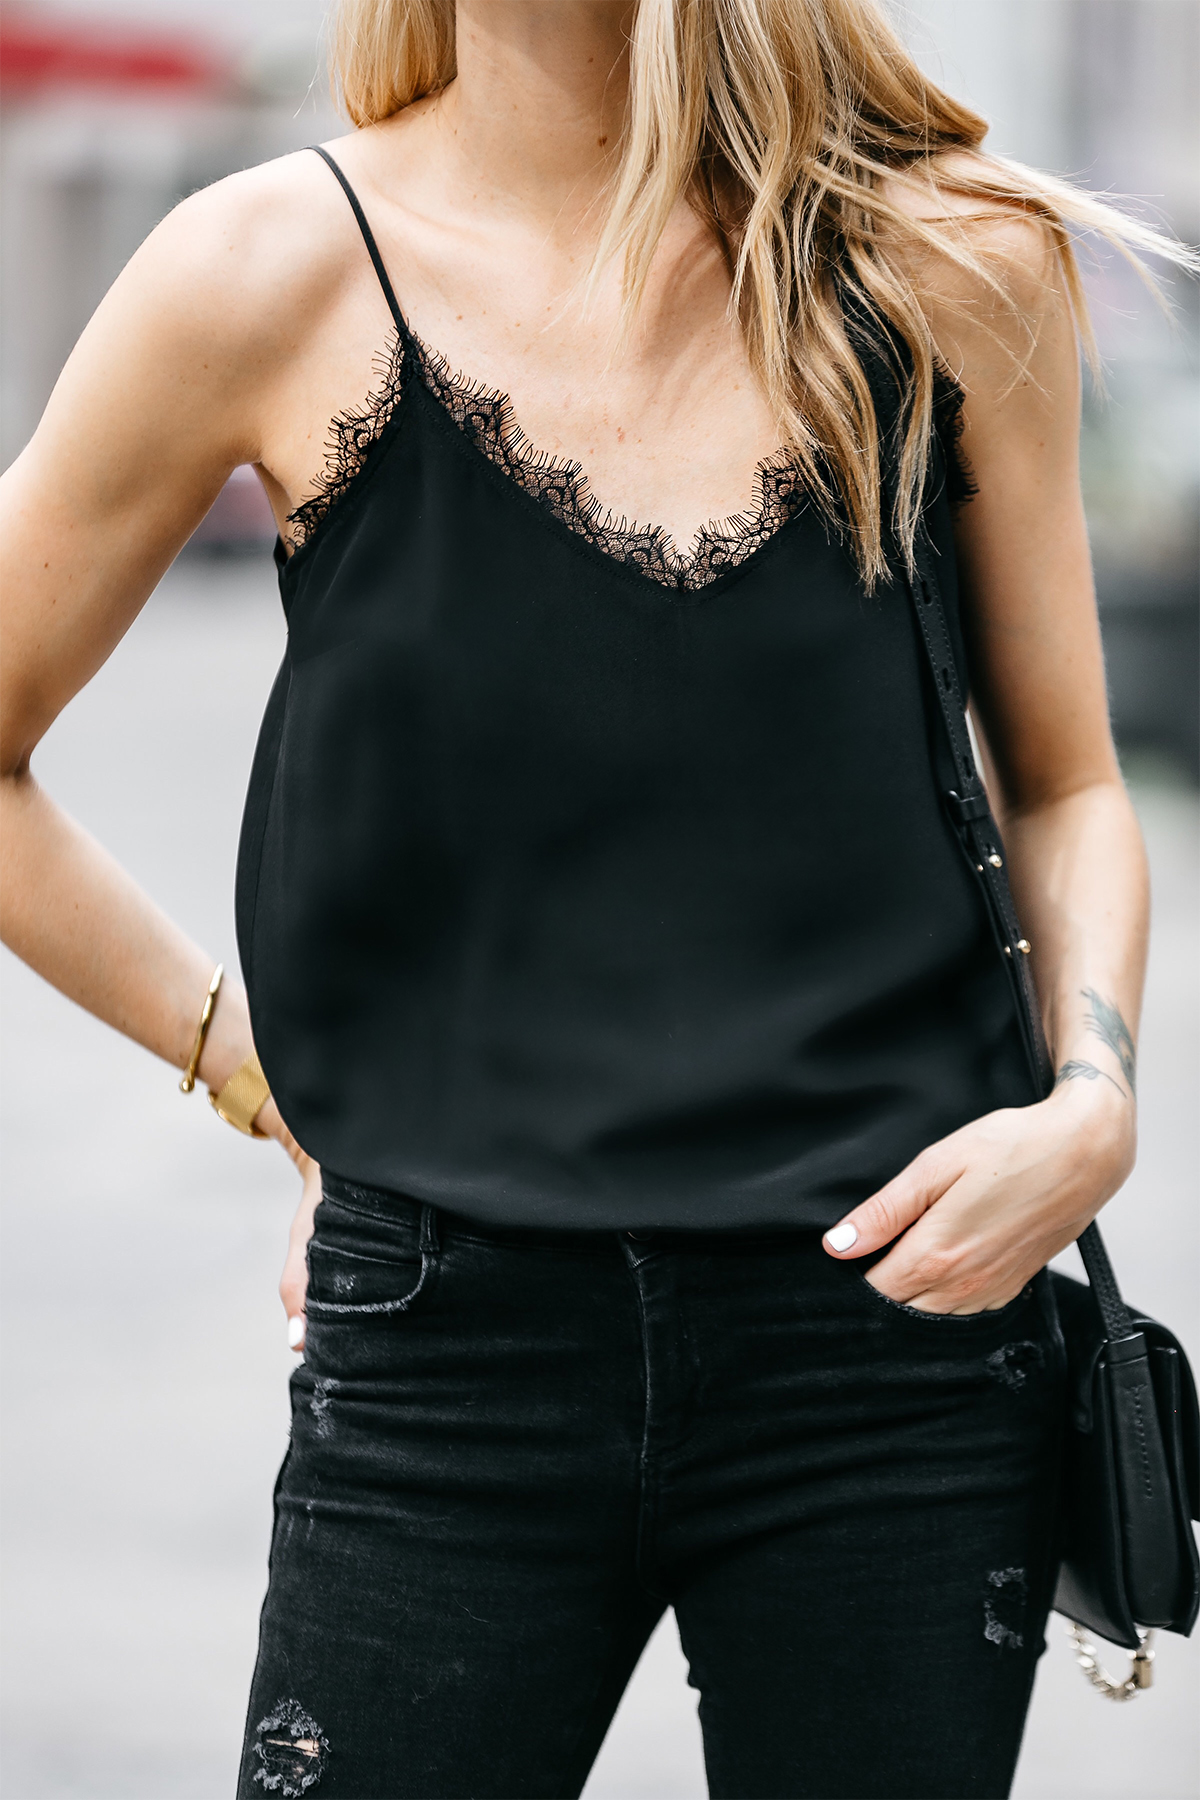 Fashion Jackson, Dallas Blogger, Fashion Blogger, Street Style, Anine Bing Black Lace Camisole, Zara Black Denim Ripped Skinny Jeans, Chloe Faye Black Handbag, Celine Aviator Sunglasses, Steve Madden Carrson Black Ankle Strap Heeled Sandals